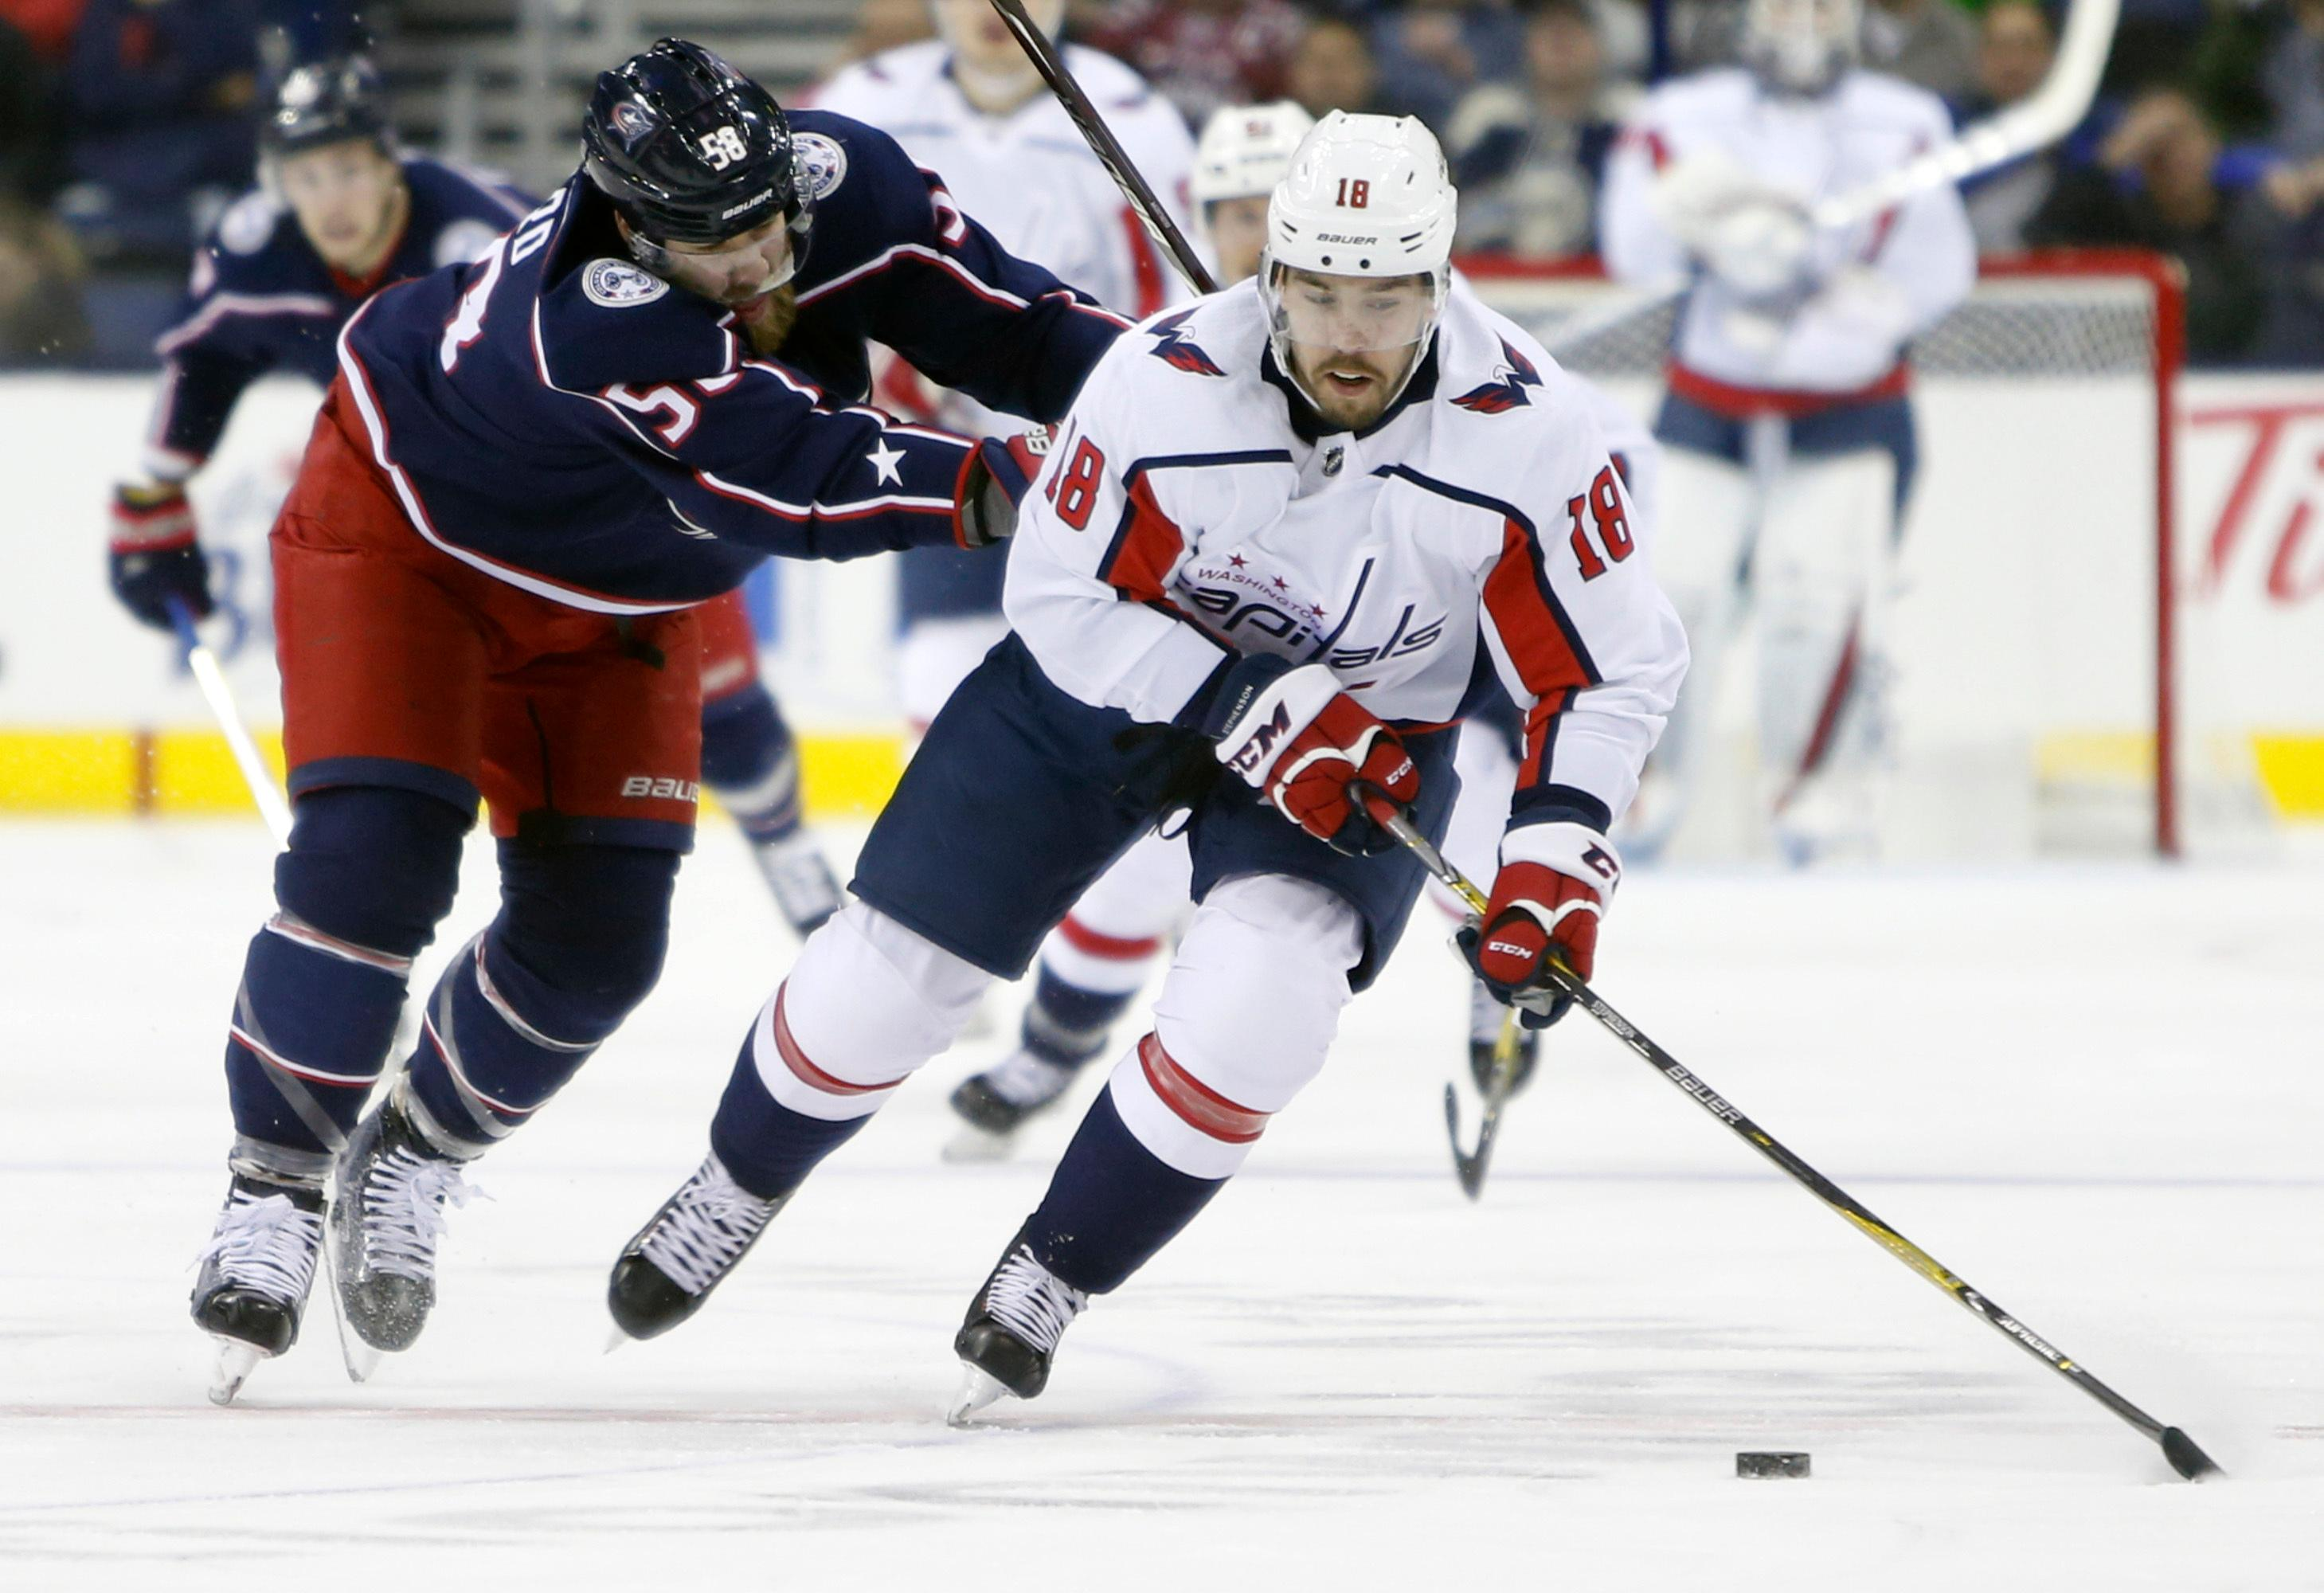 Washington Capitals' Chandler Stephenson, right, carries the puck up ice as Columbus Blue Jackets' David Savard defends during the first period of an NHL hockey game Tuesday, Feb. 6, 2018, in Columbus, Ohio. (AP Photo/Jay LaPrete)